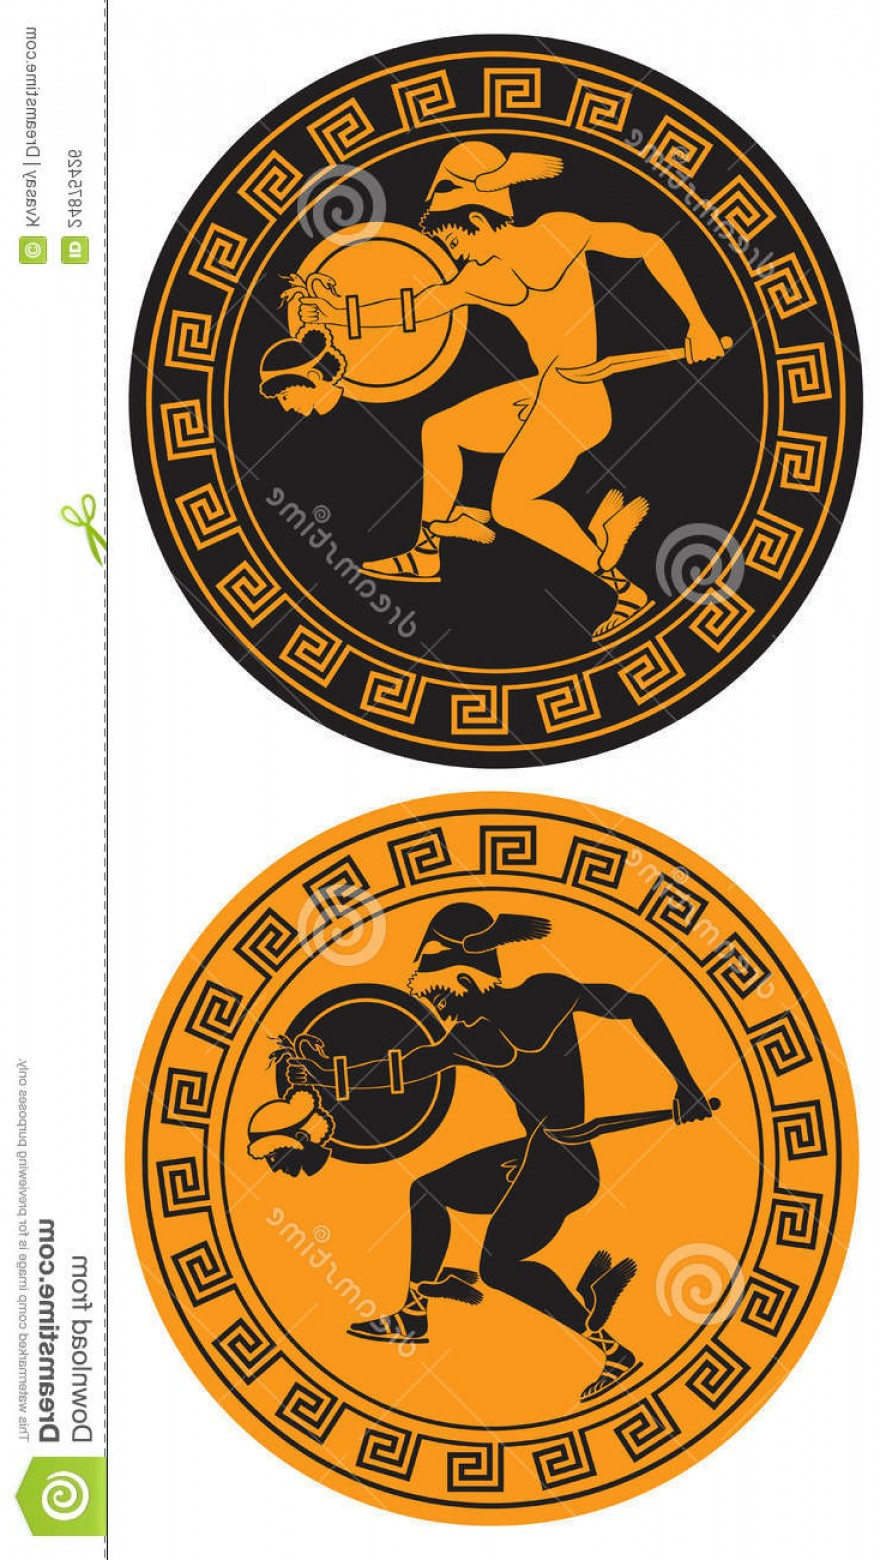 Perseus Vector Logo: Royalty Free Stock Image Mythical Hero Perseus Image